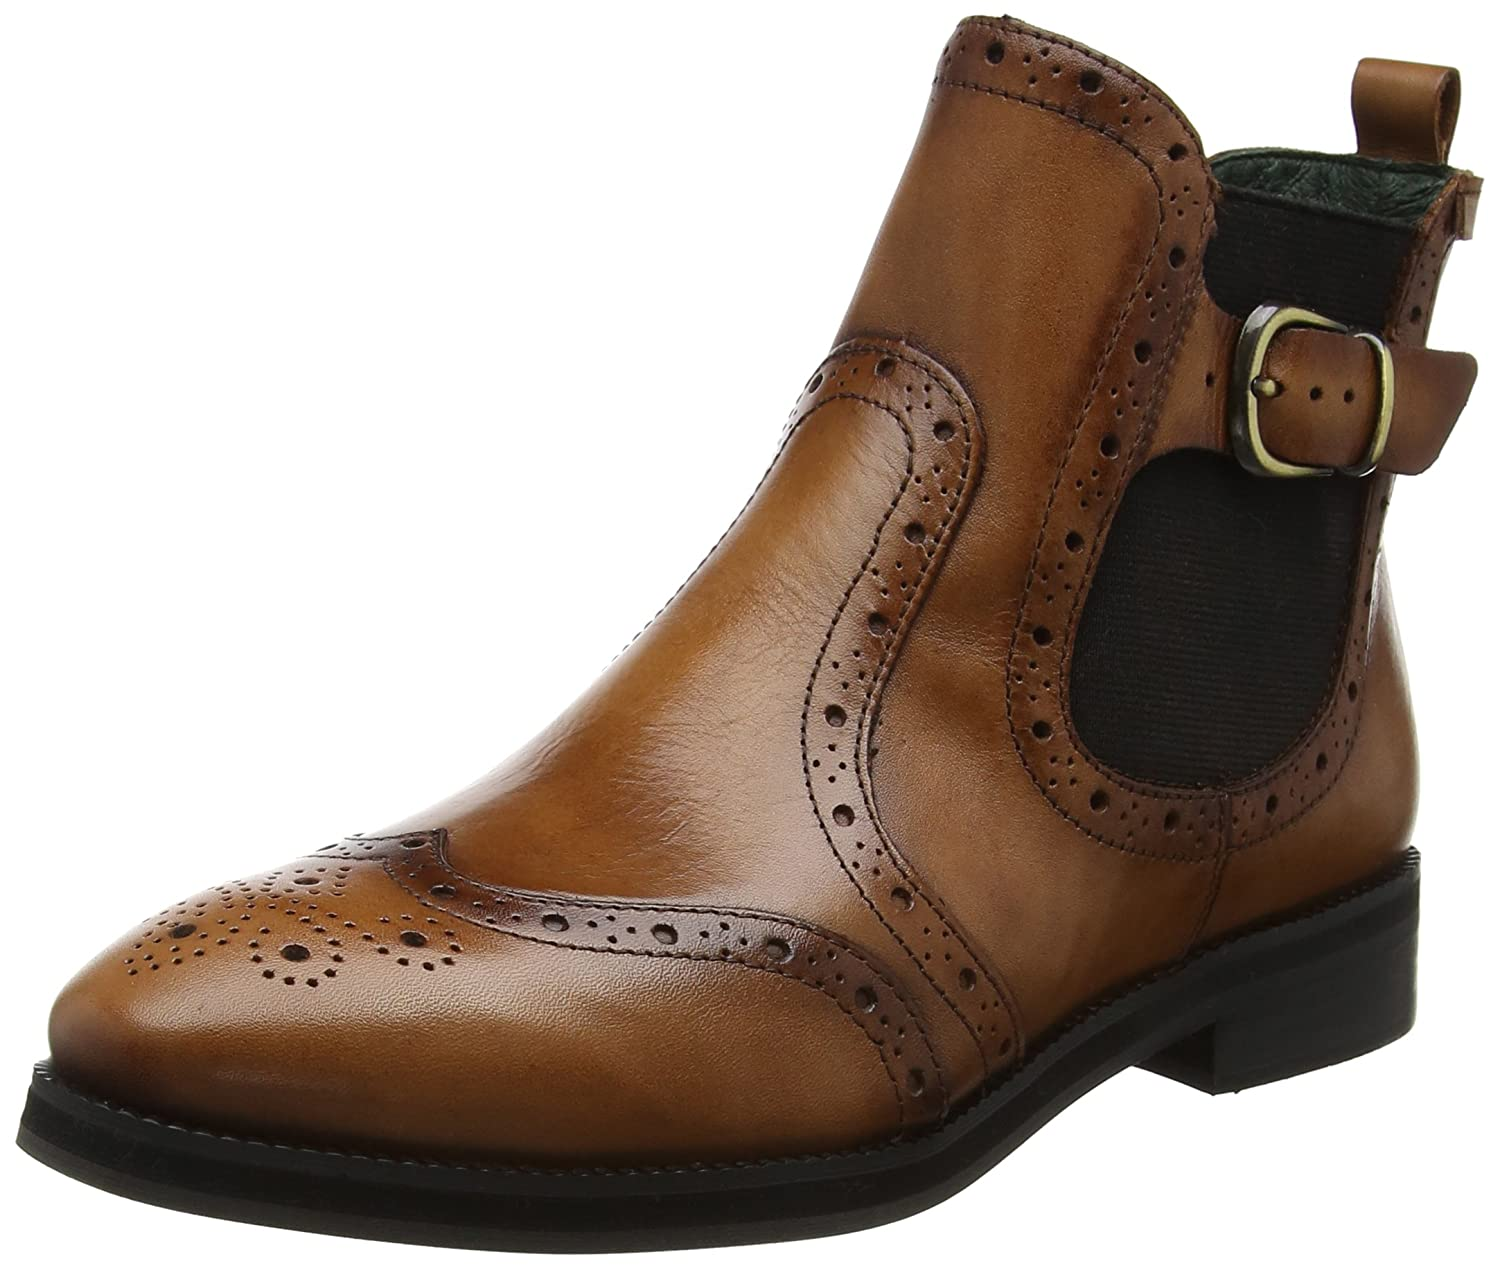 9c8134a10de5bb Pikolinos Women s Royal W5m i17 Chelsea Boots  Amazon.co.uk  Shoes   Bags